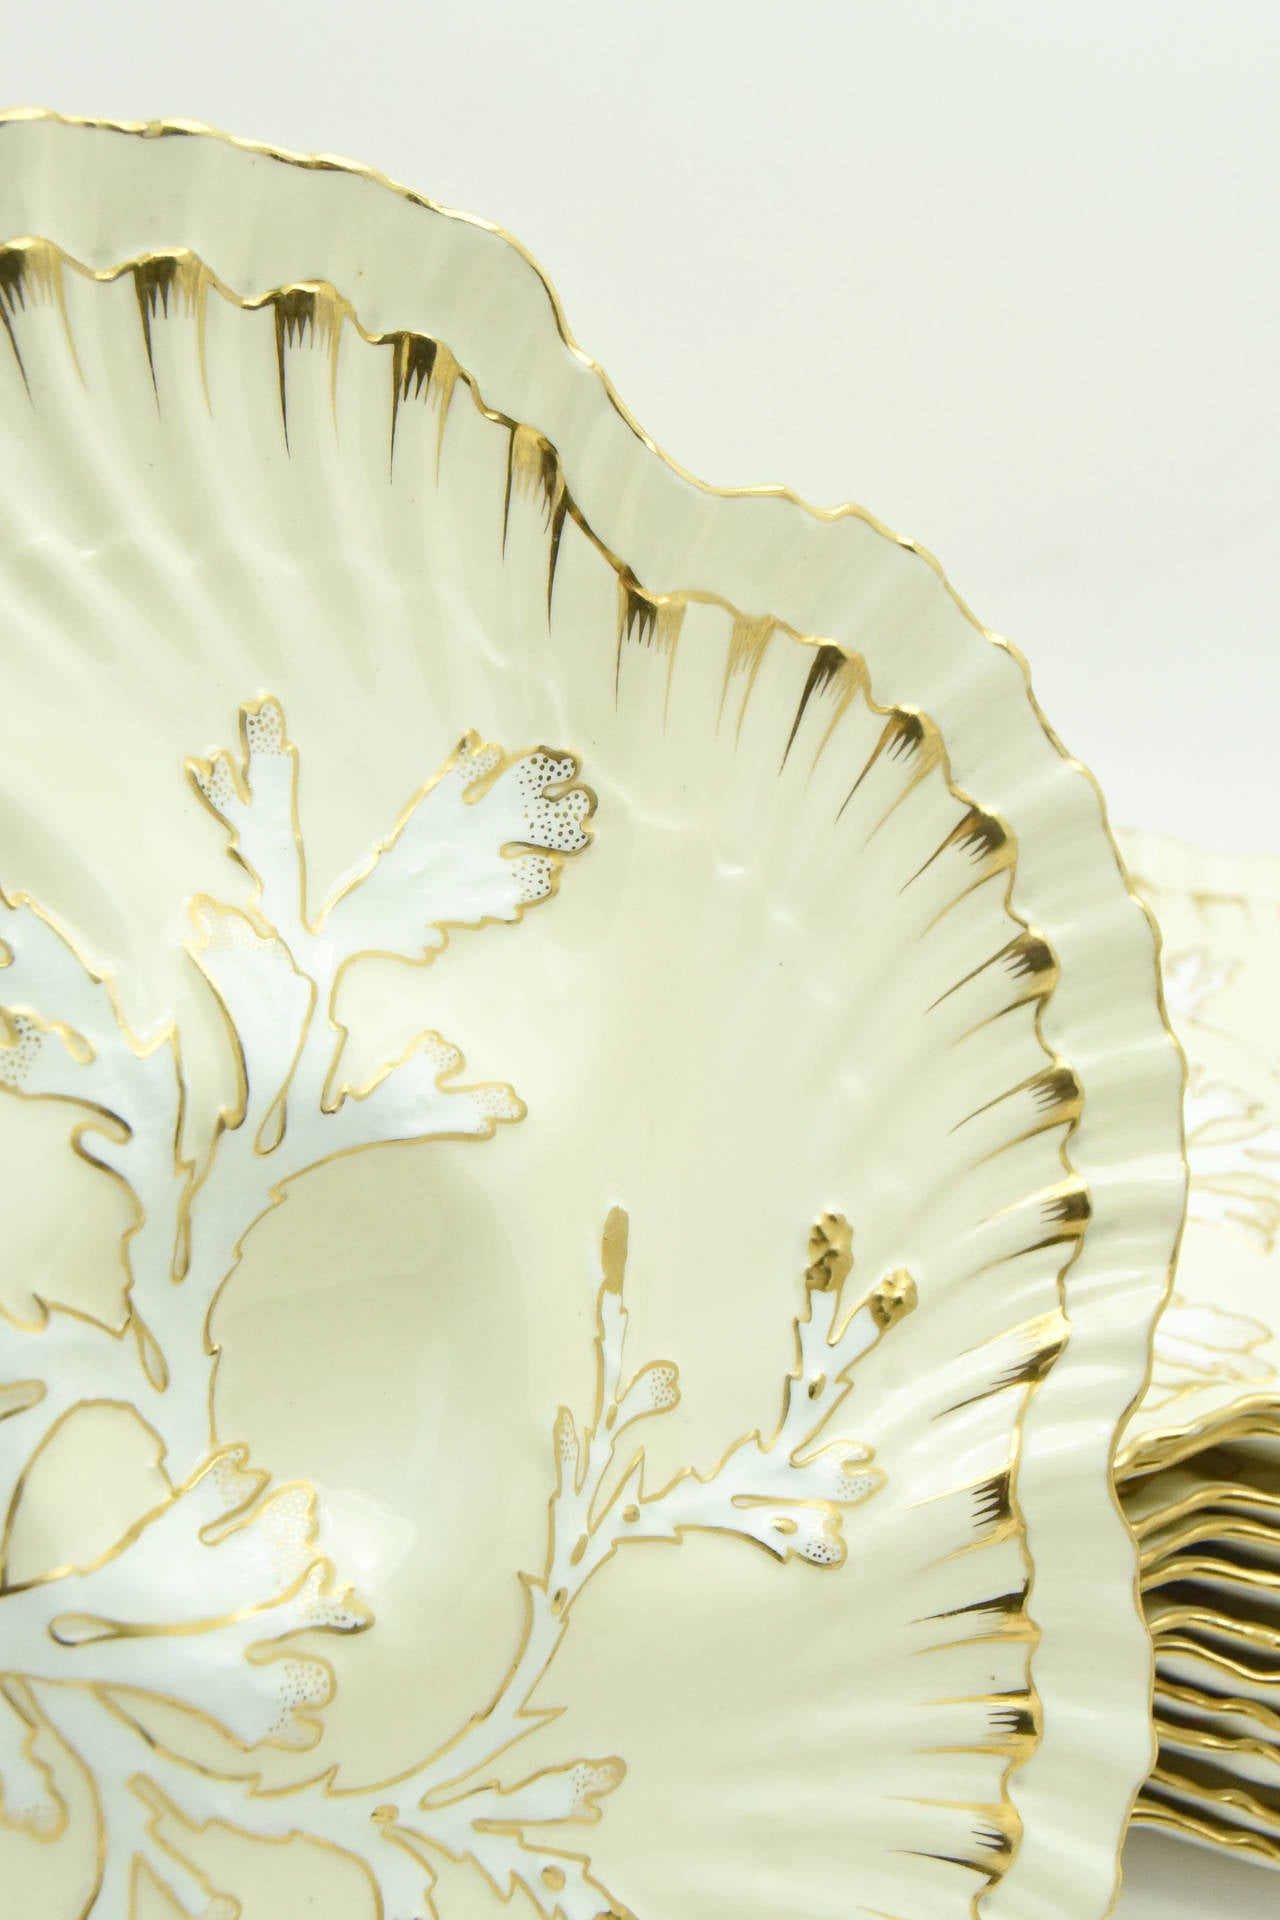 Set of 12 19th c. Brownfield's for Tiffany Ivory & Gold Coral Reef Oyster Plates For Sale 1